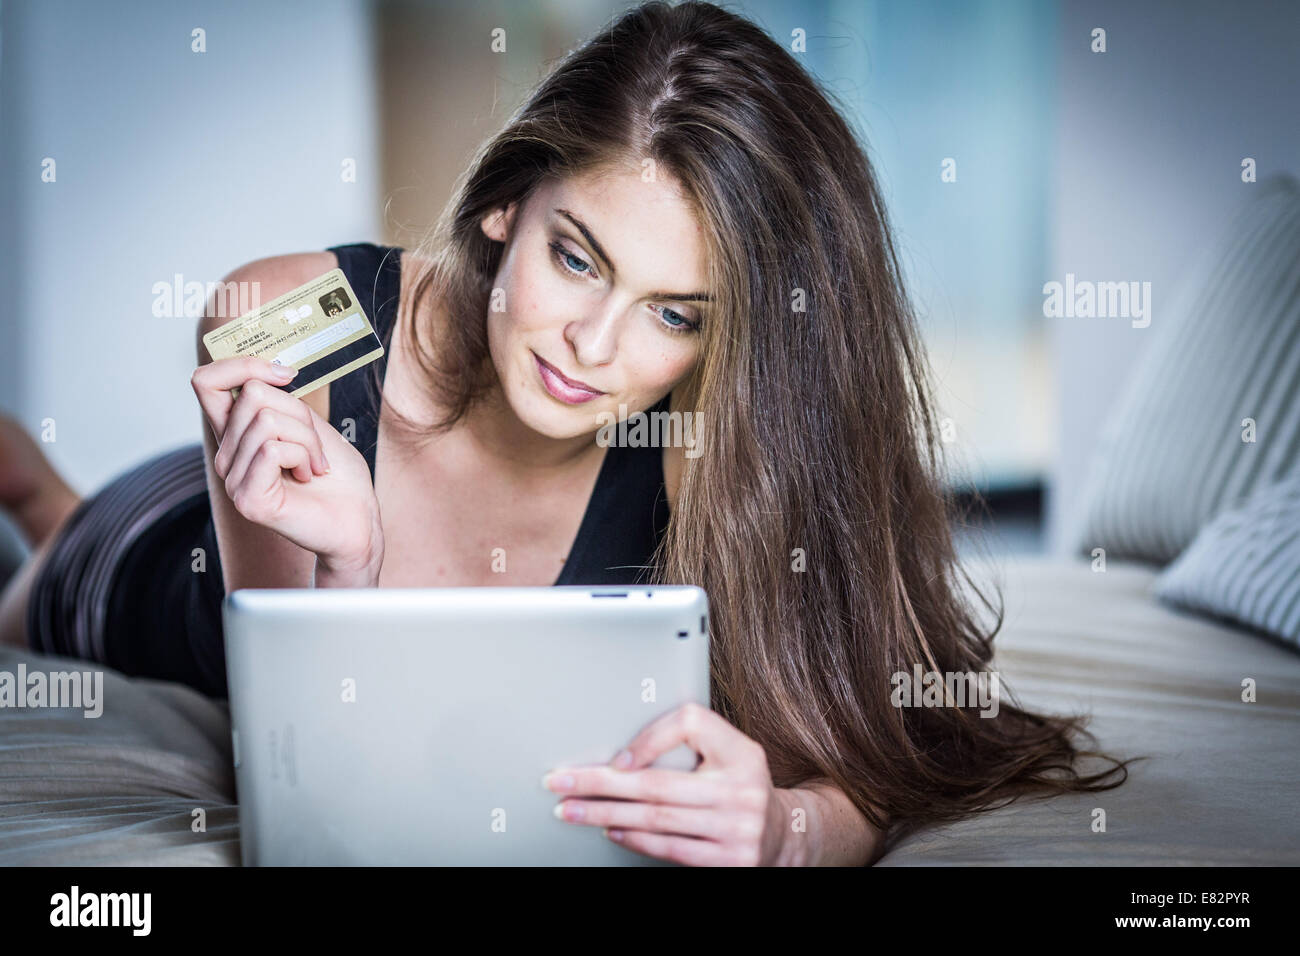 Purchase online. - Stock Image